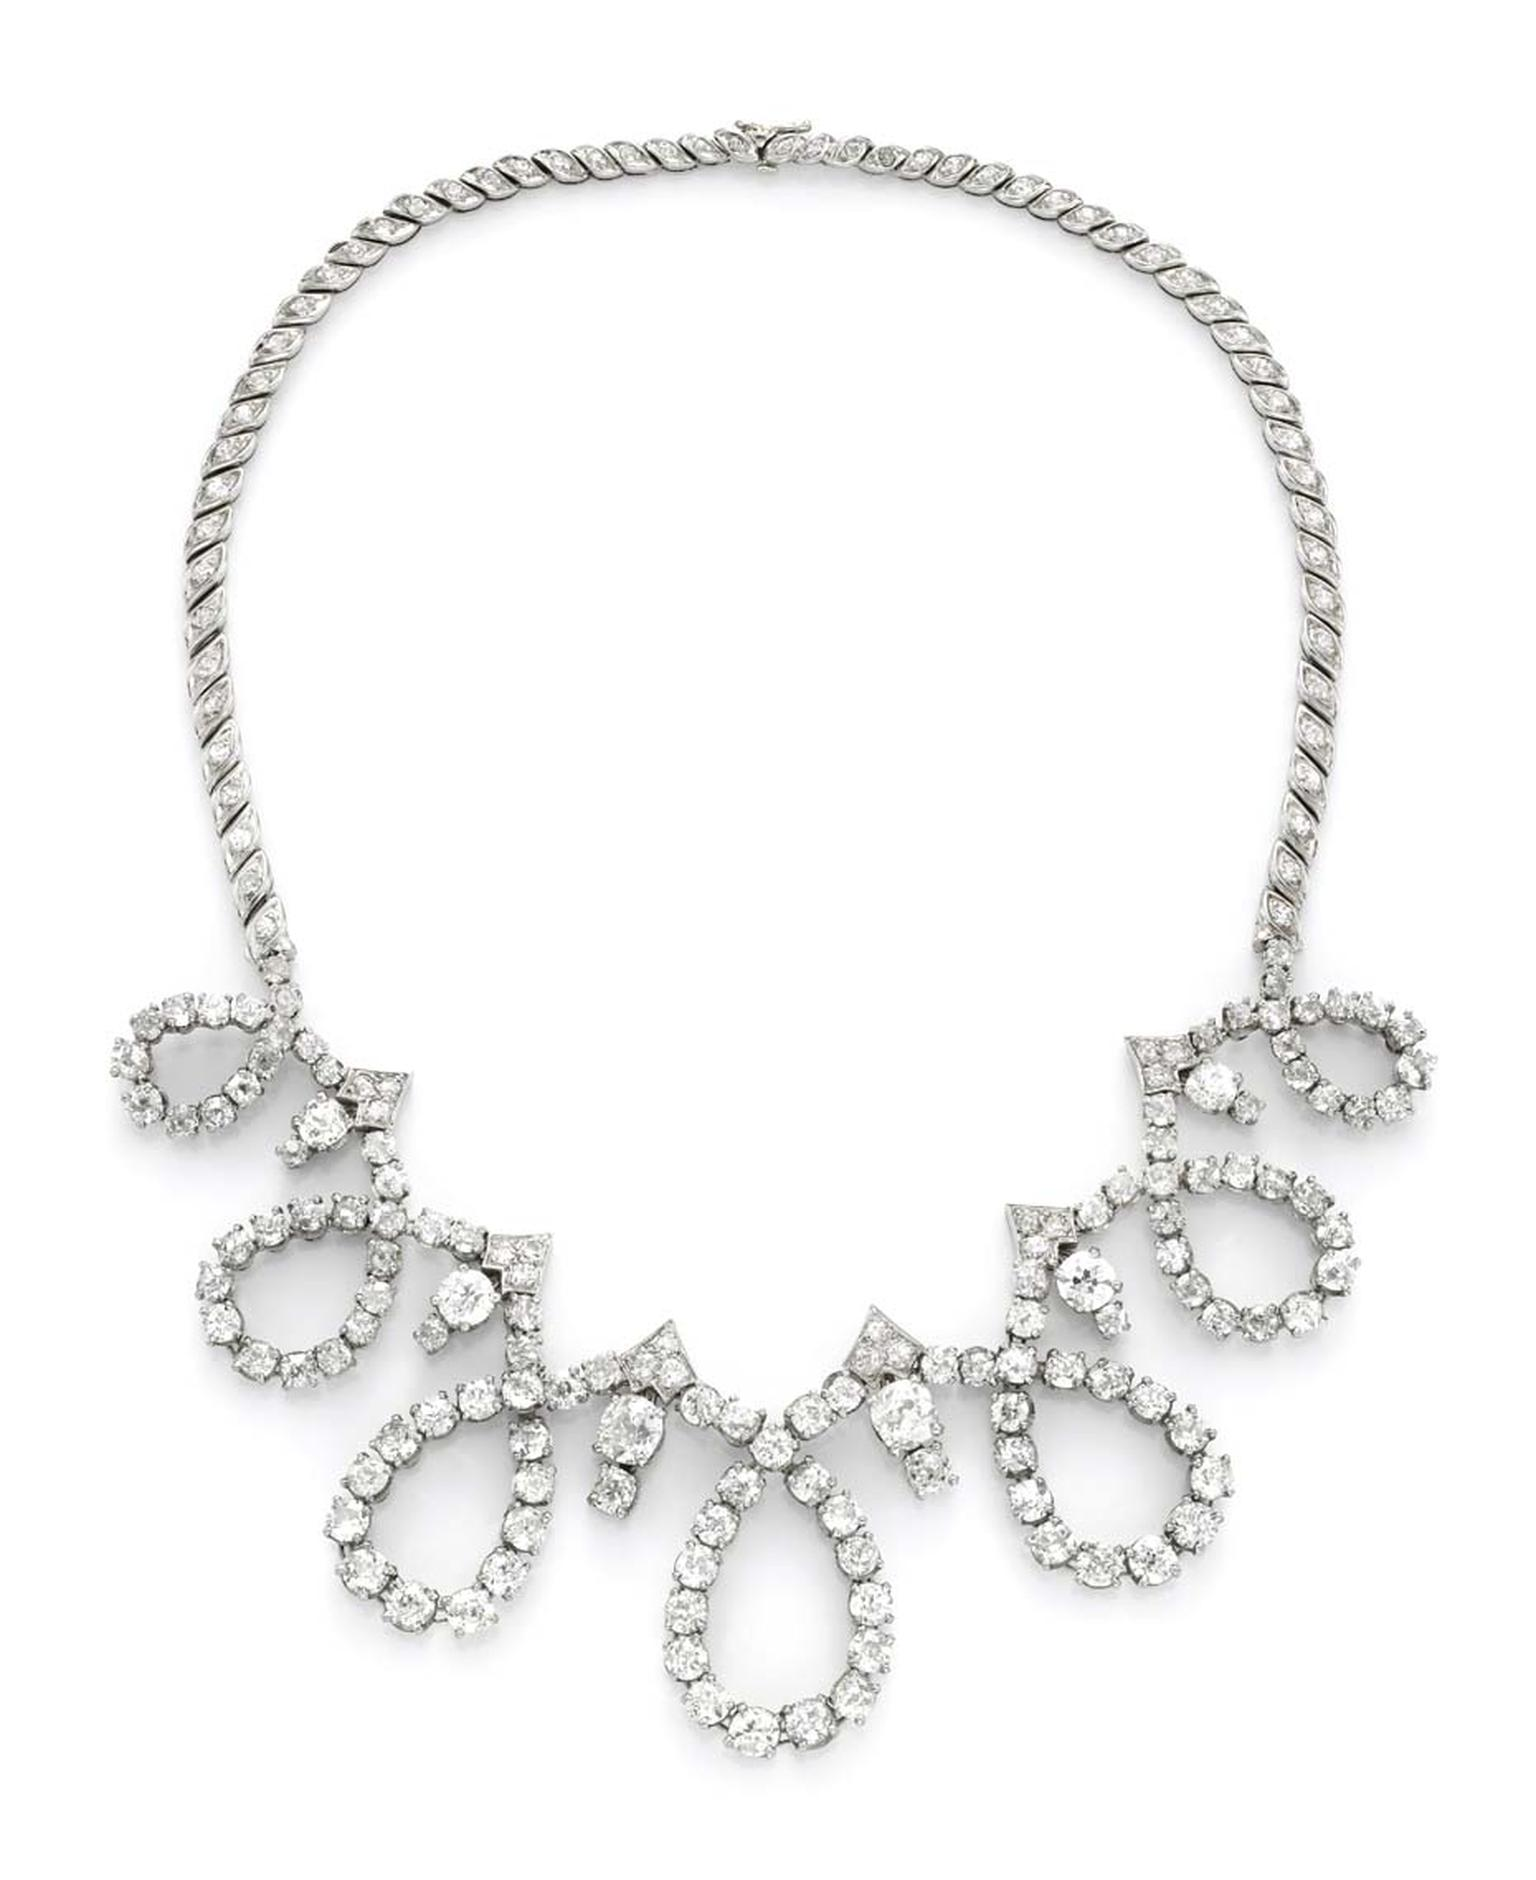 Pierre Sterle diamond necklace circa 1950, available at Simon Teakle.